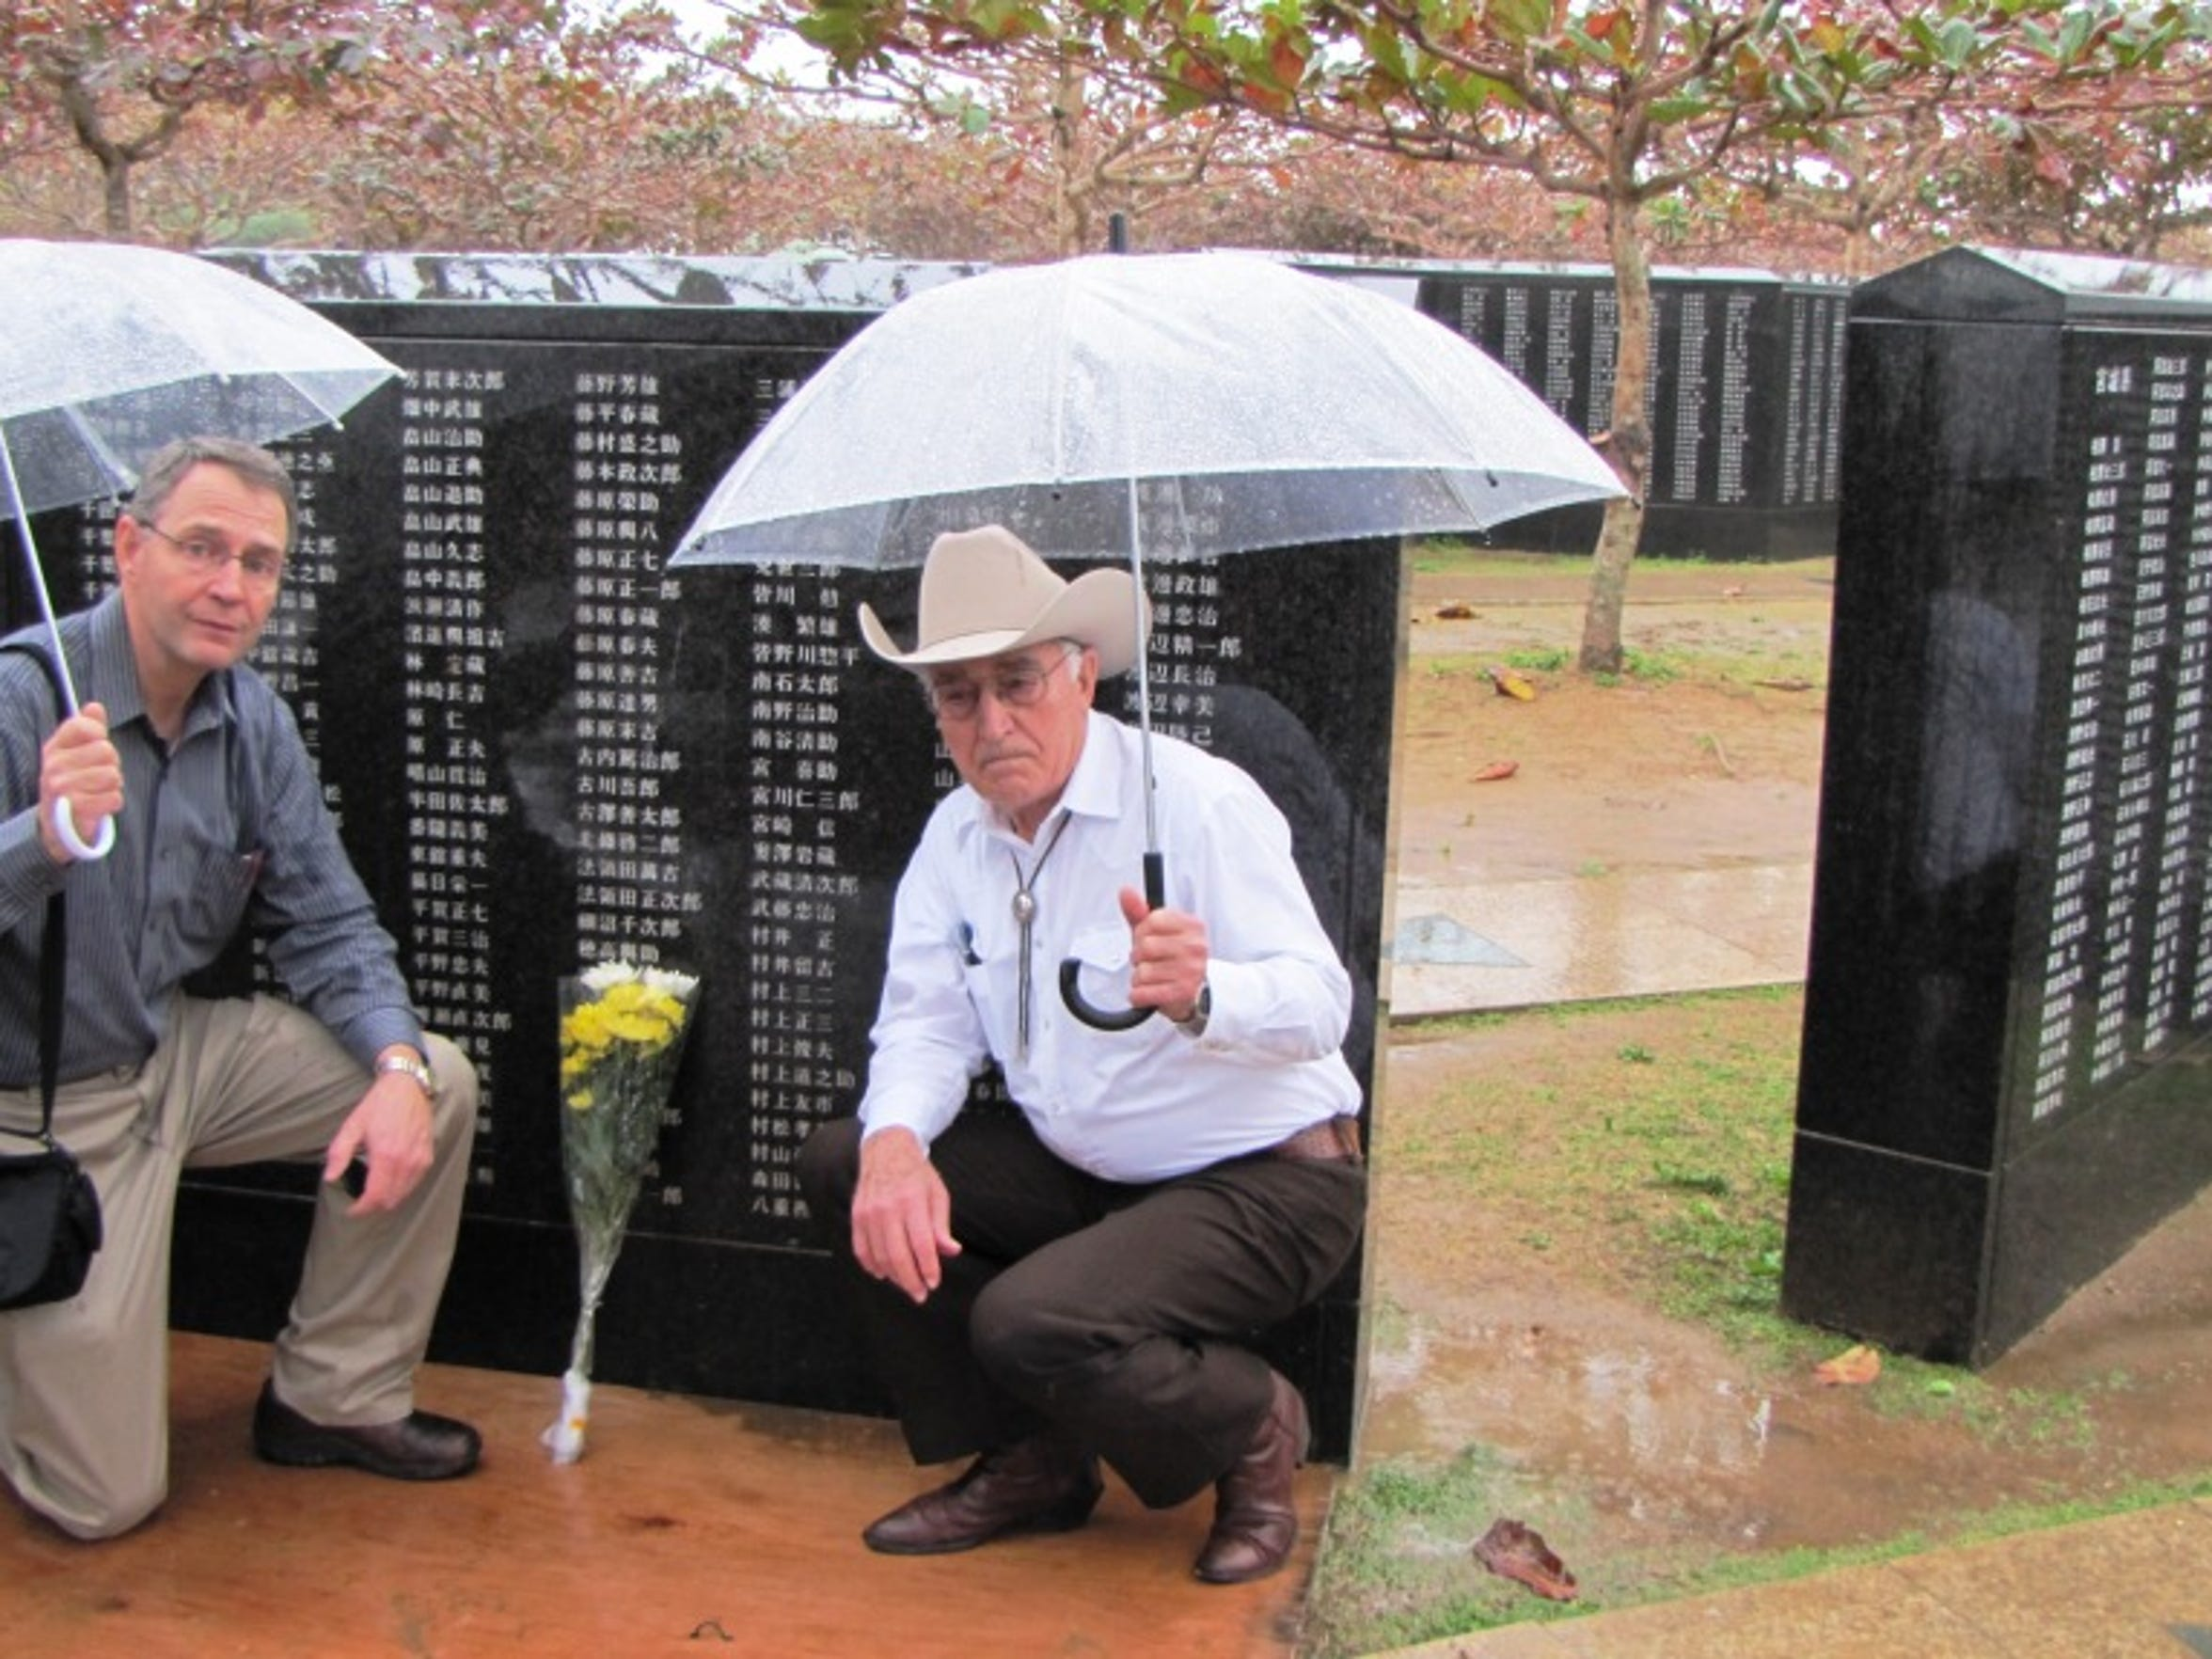 Durl Gibbs and his son Wes following a brief memorial